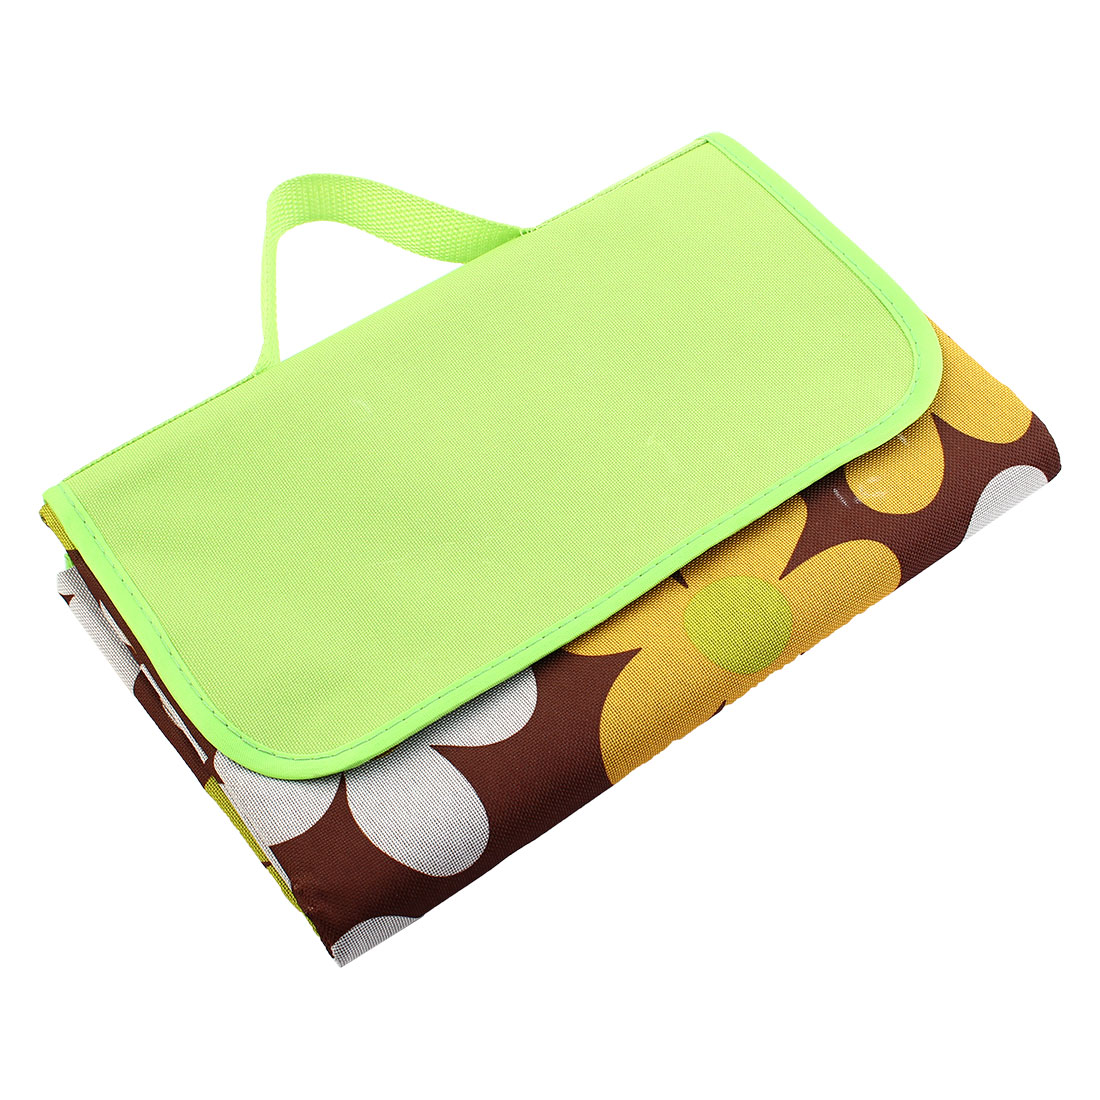 Travel Outdoor Water Resistant Pad Foldable Picnic Blanket Portable Camping Mat Green